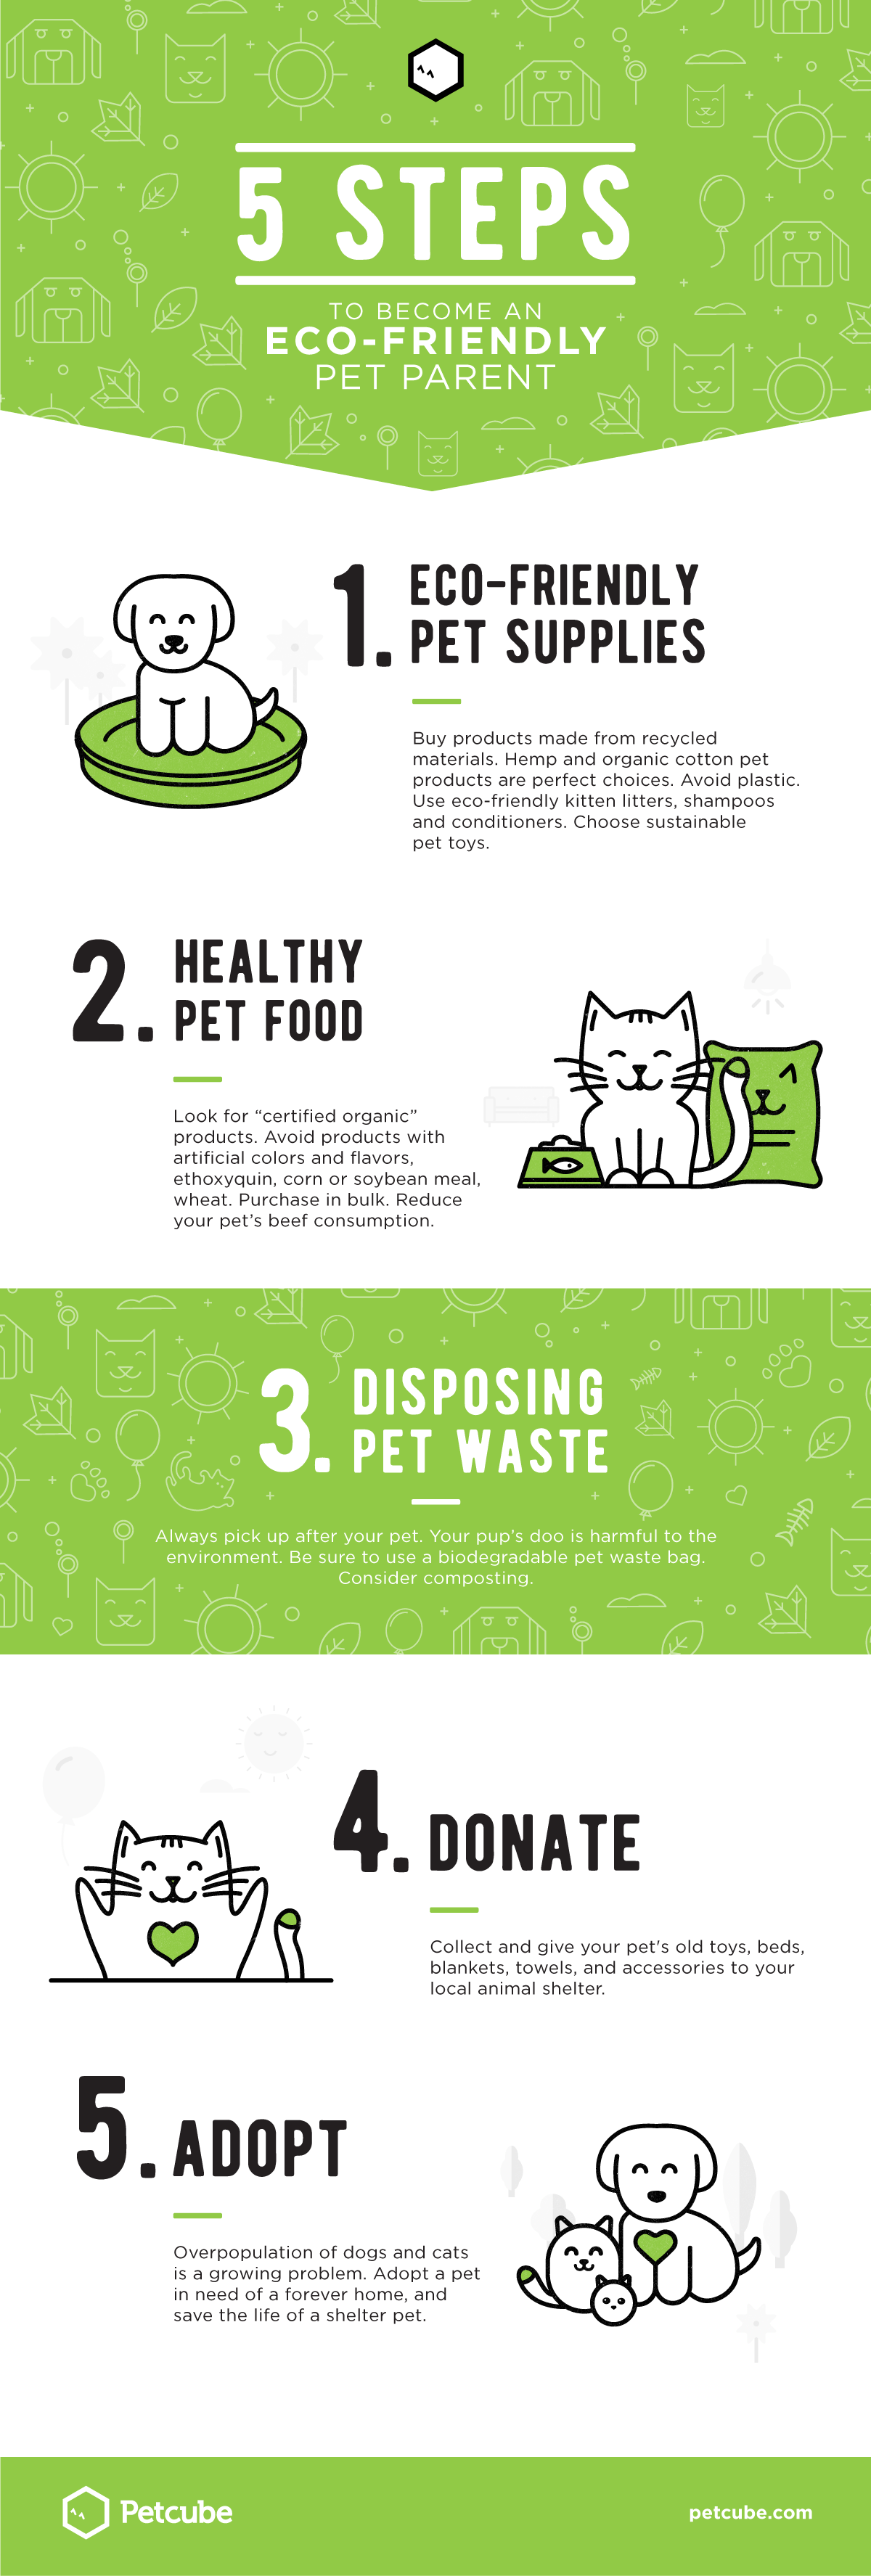 5 Steps To Become An Eco-Friendly Pet Parent